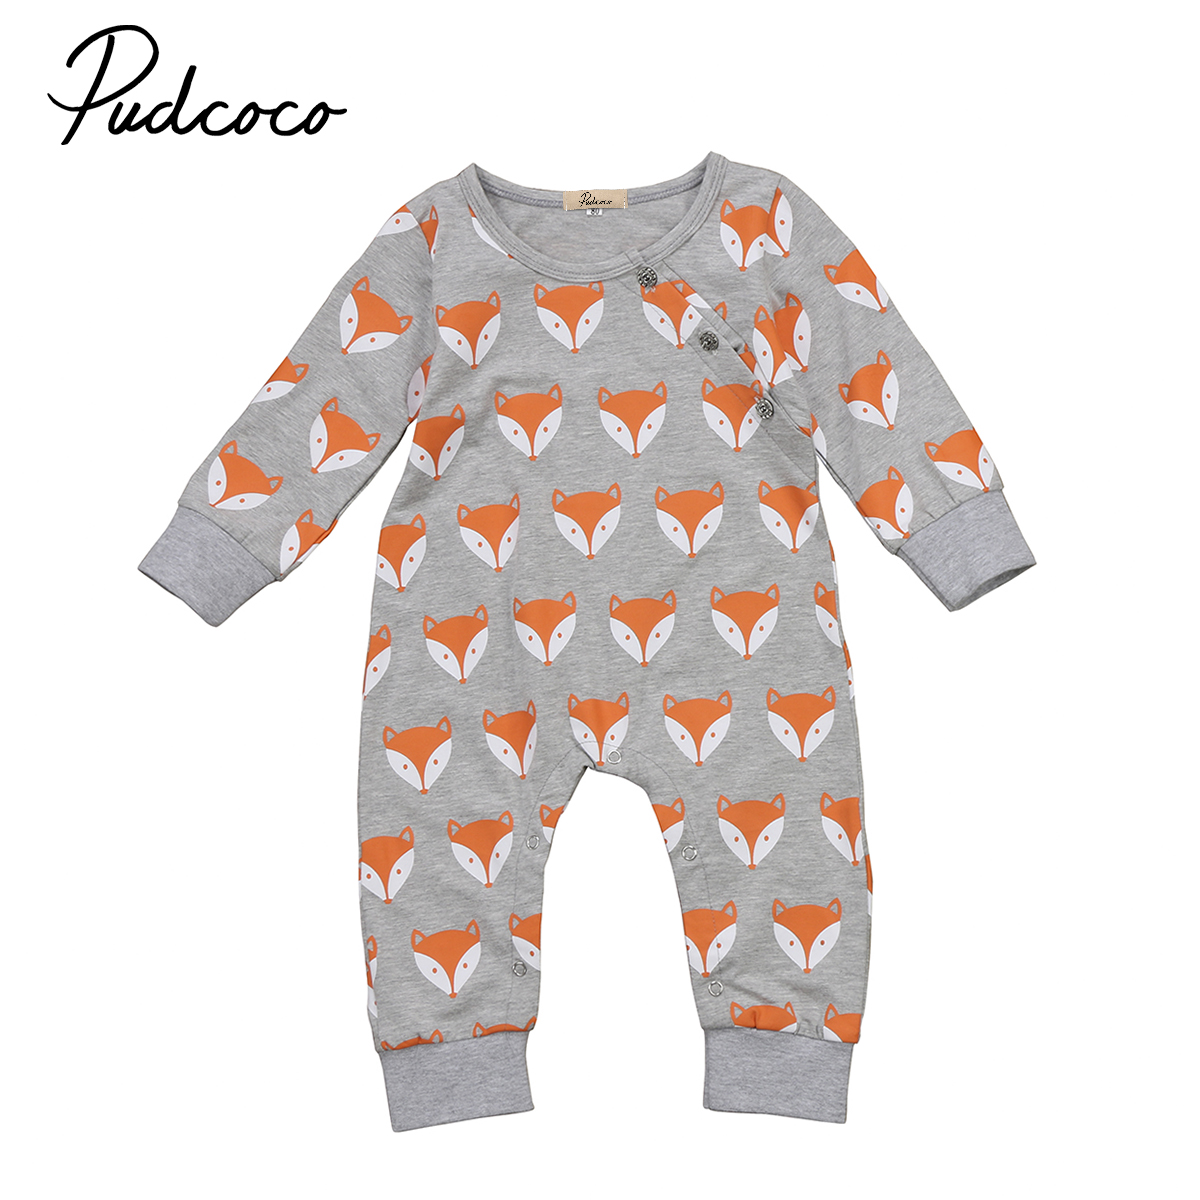 Infant Baby Girl Boys Cute Long Sleeve Fox Romper Cotton Jumpsuit Playsuit One-Pieces Clothes Outfits cotton cute red lips print newborn infant baby boys clothing spring long sleeve romper jumpsuit baby rompers clothes outfits set